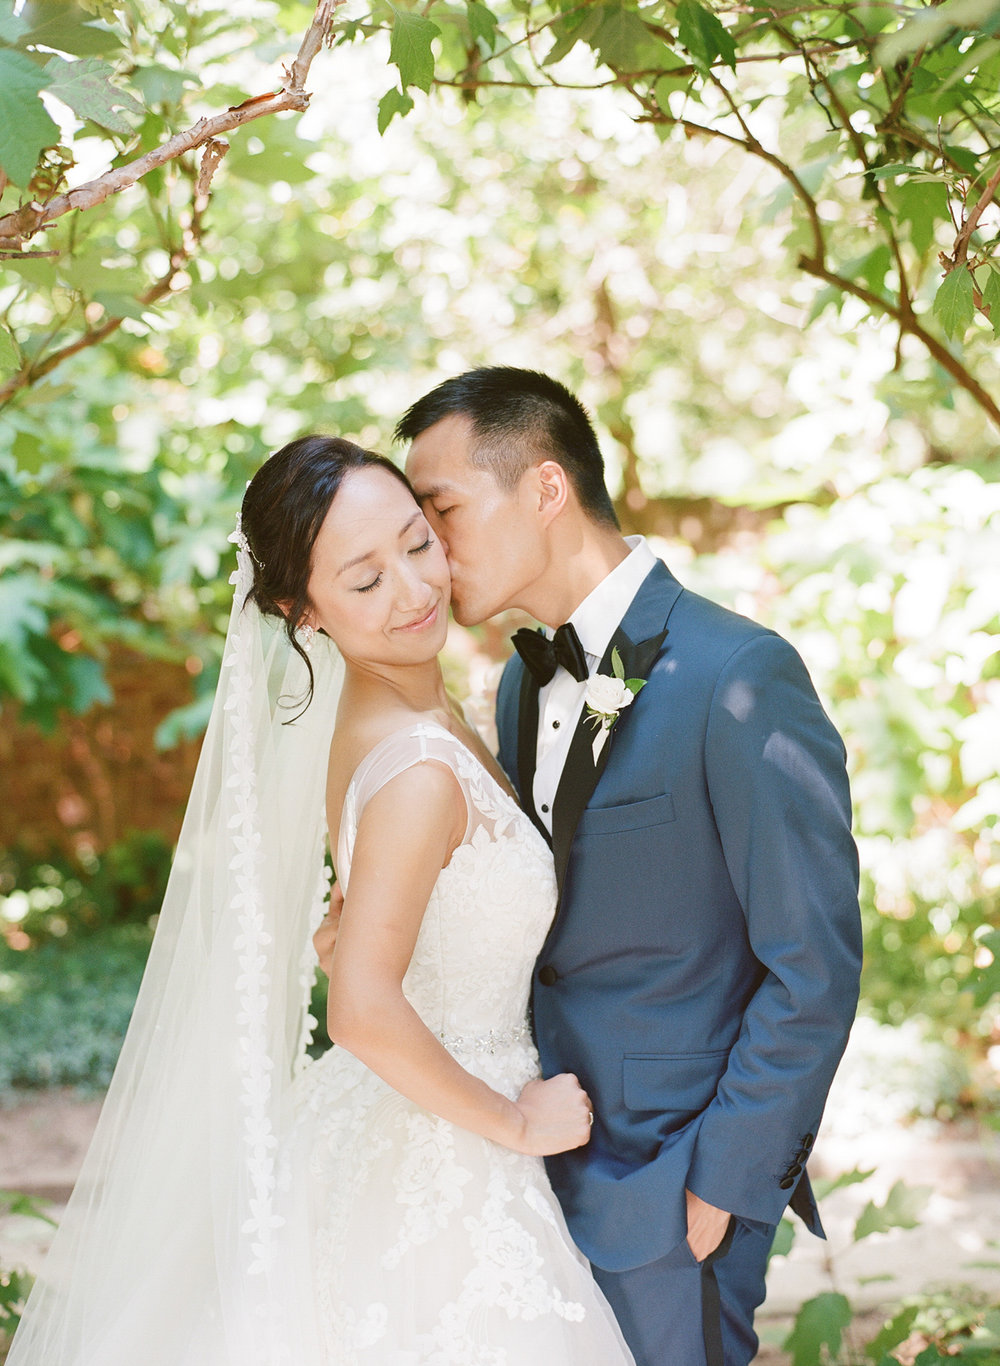 Wanxin_Paul_Wedding(98of164).jpg